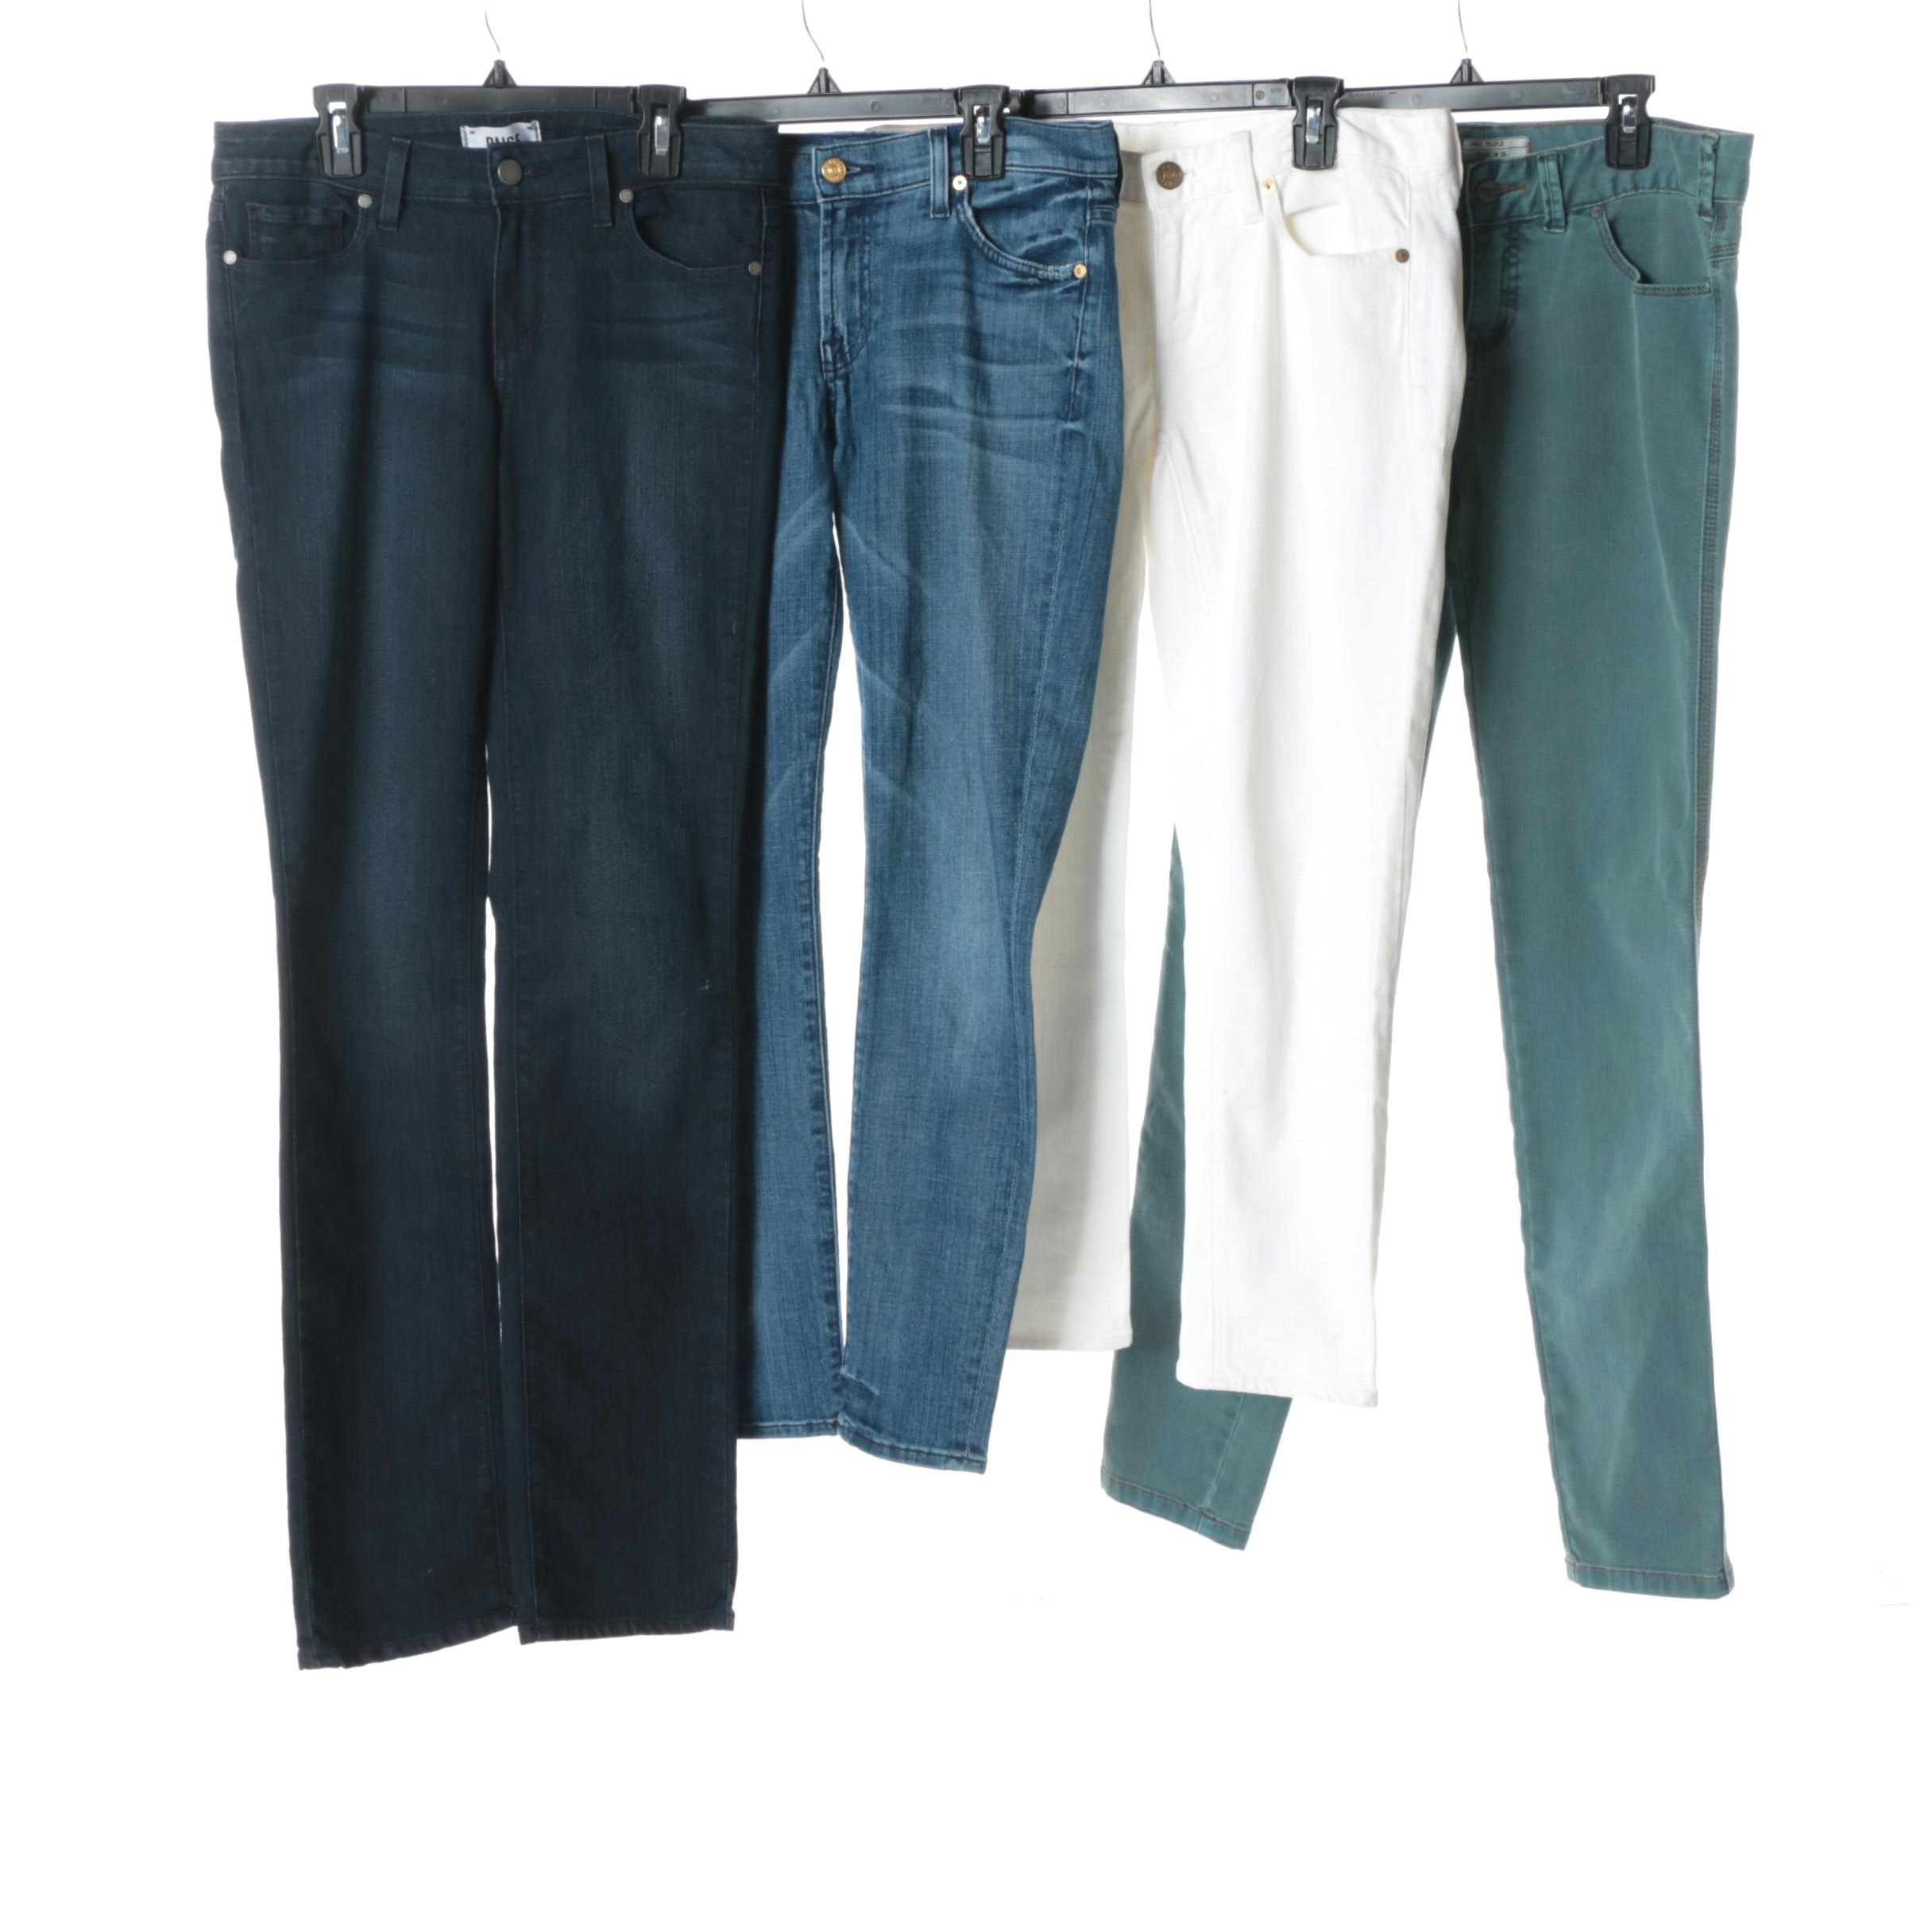 Women's Jeans Including 7 For All Mankind, Free People and J. Crew